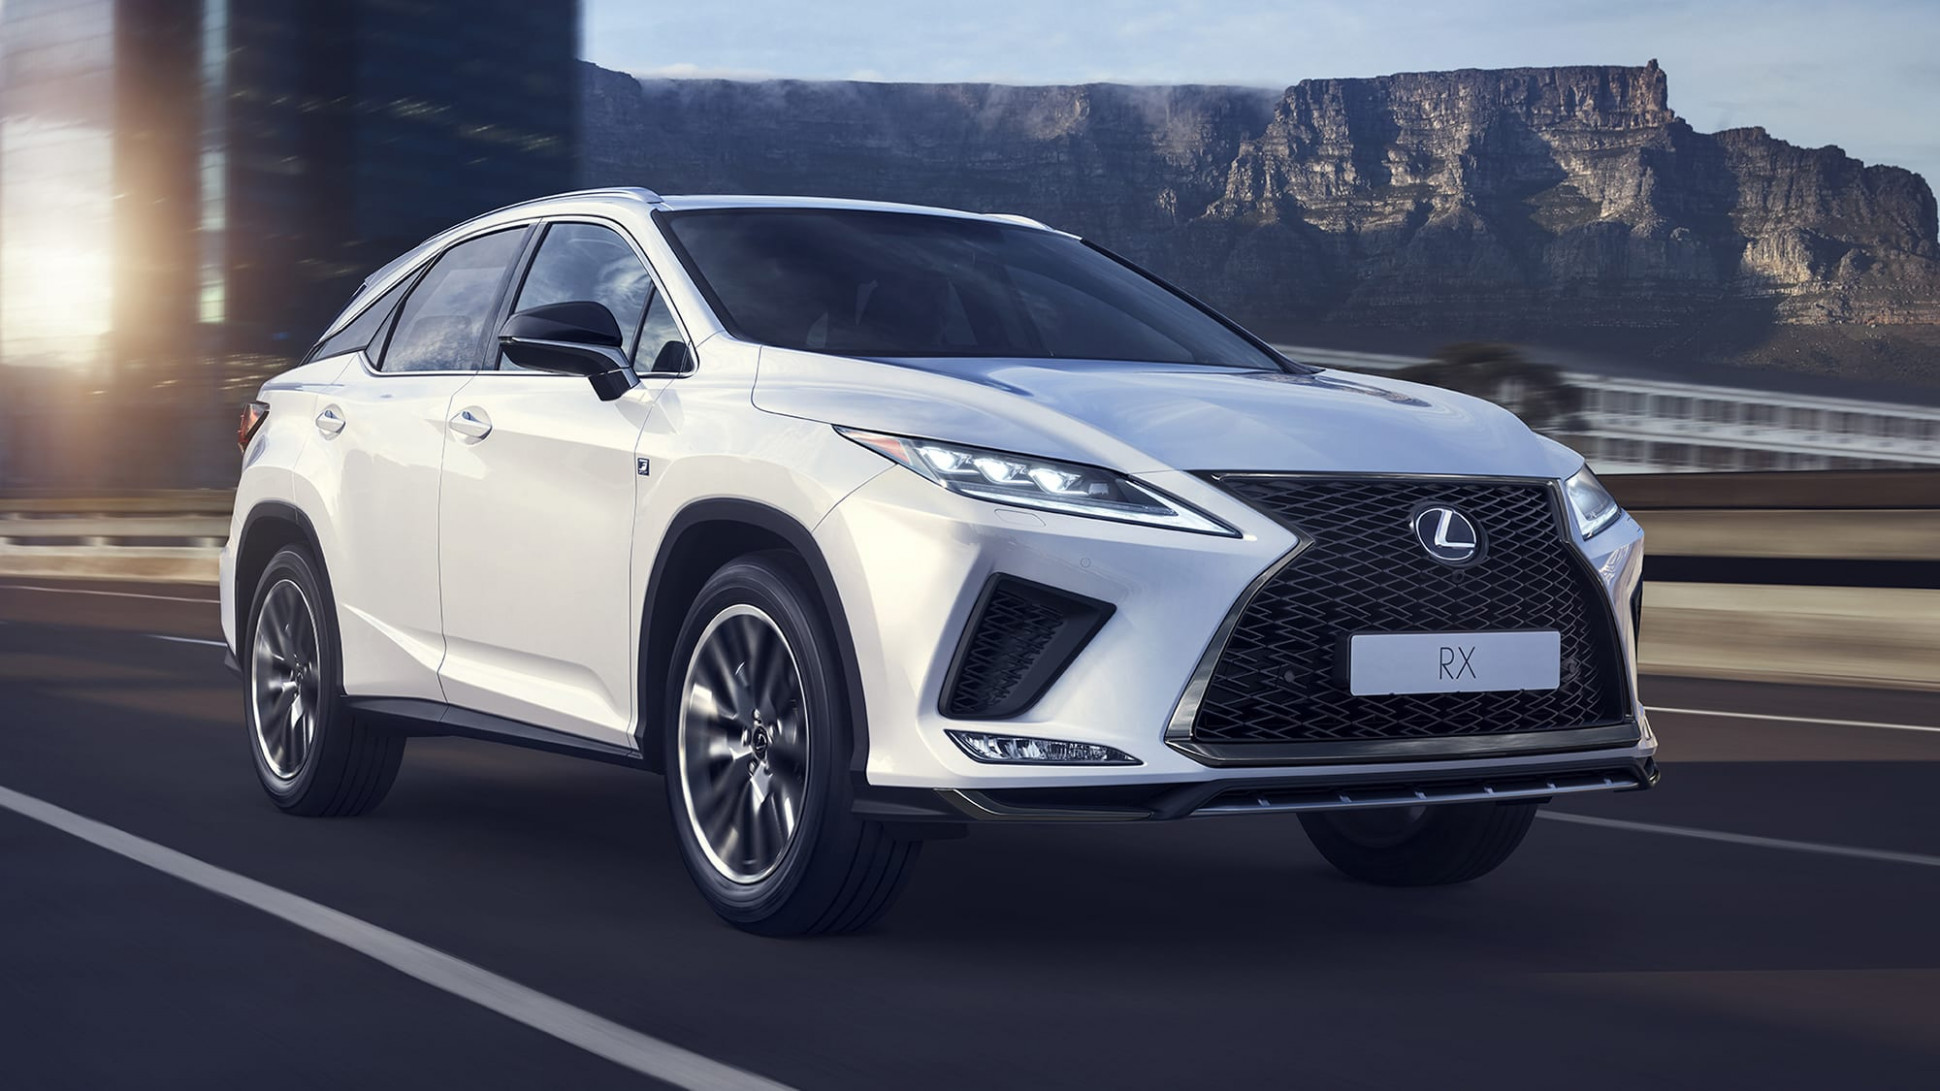 11 Lexus RX revealed, here late in 11 | CarAdvice - lexus rx 2020 price